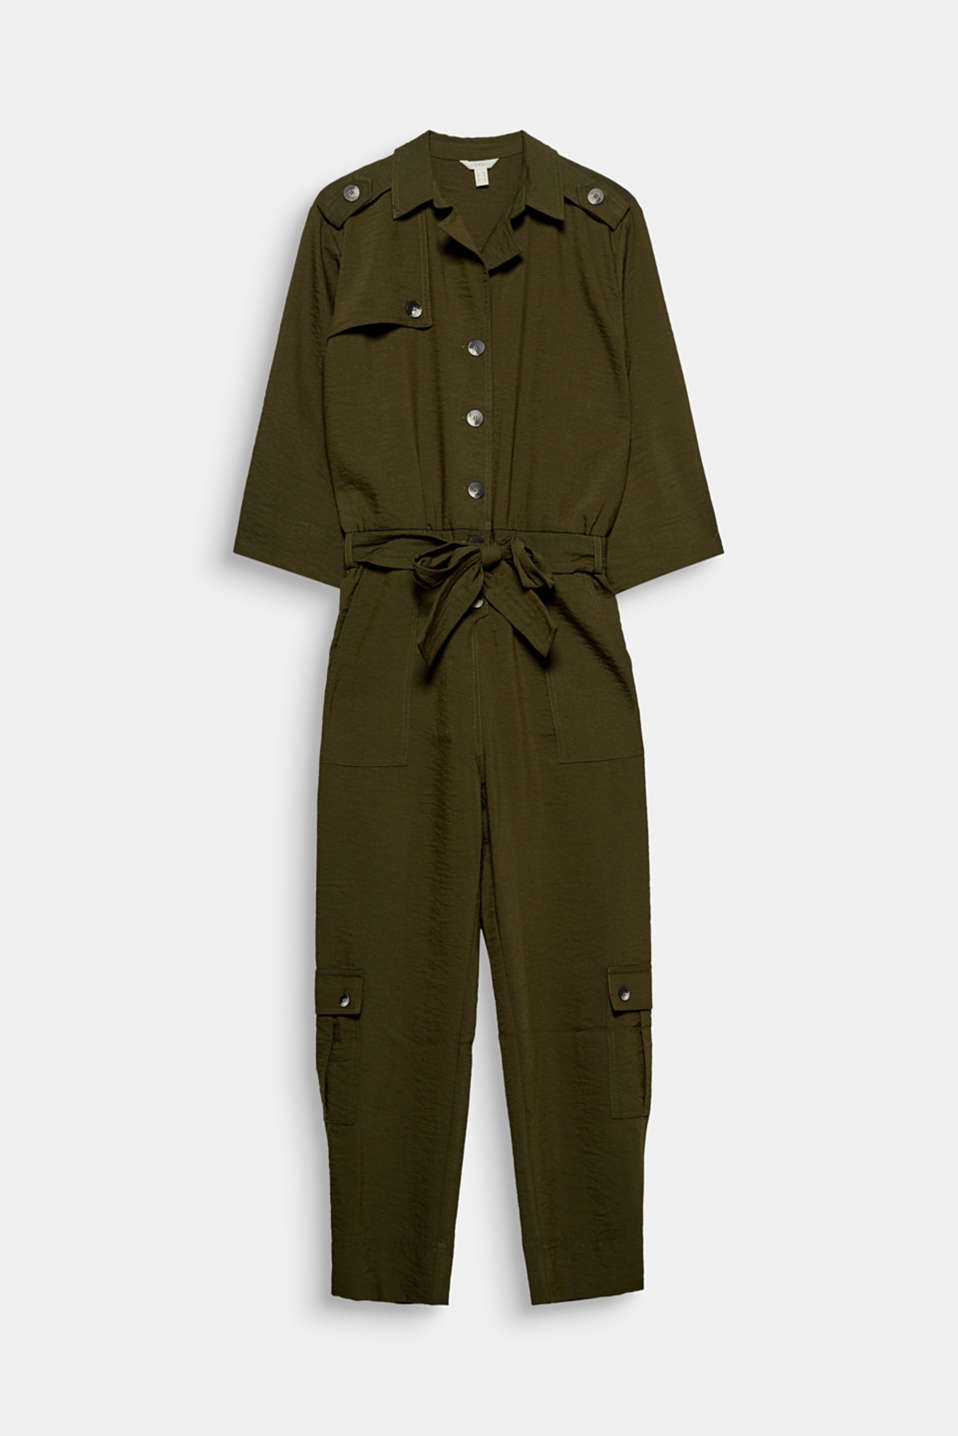 The softly draped material in a trench/cargo style makes this jumpsuit bang on trend.